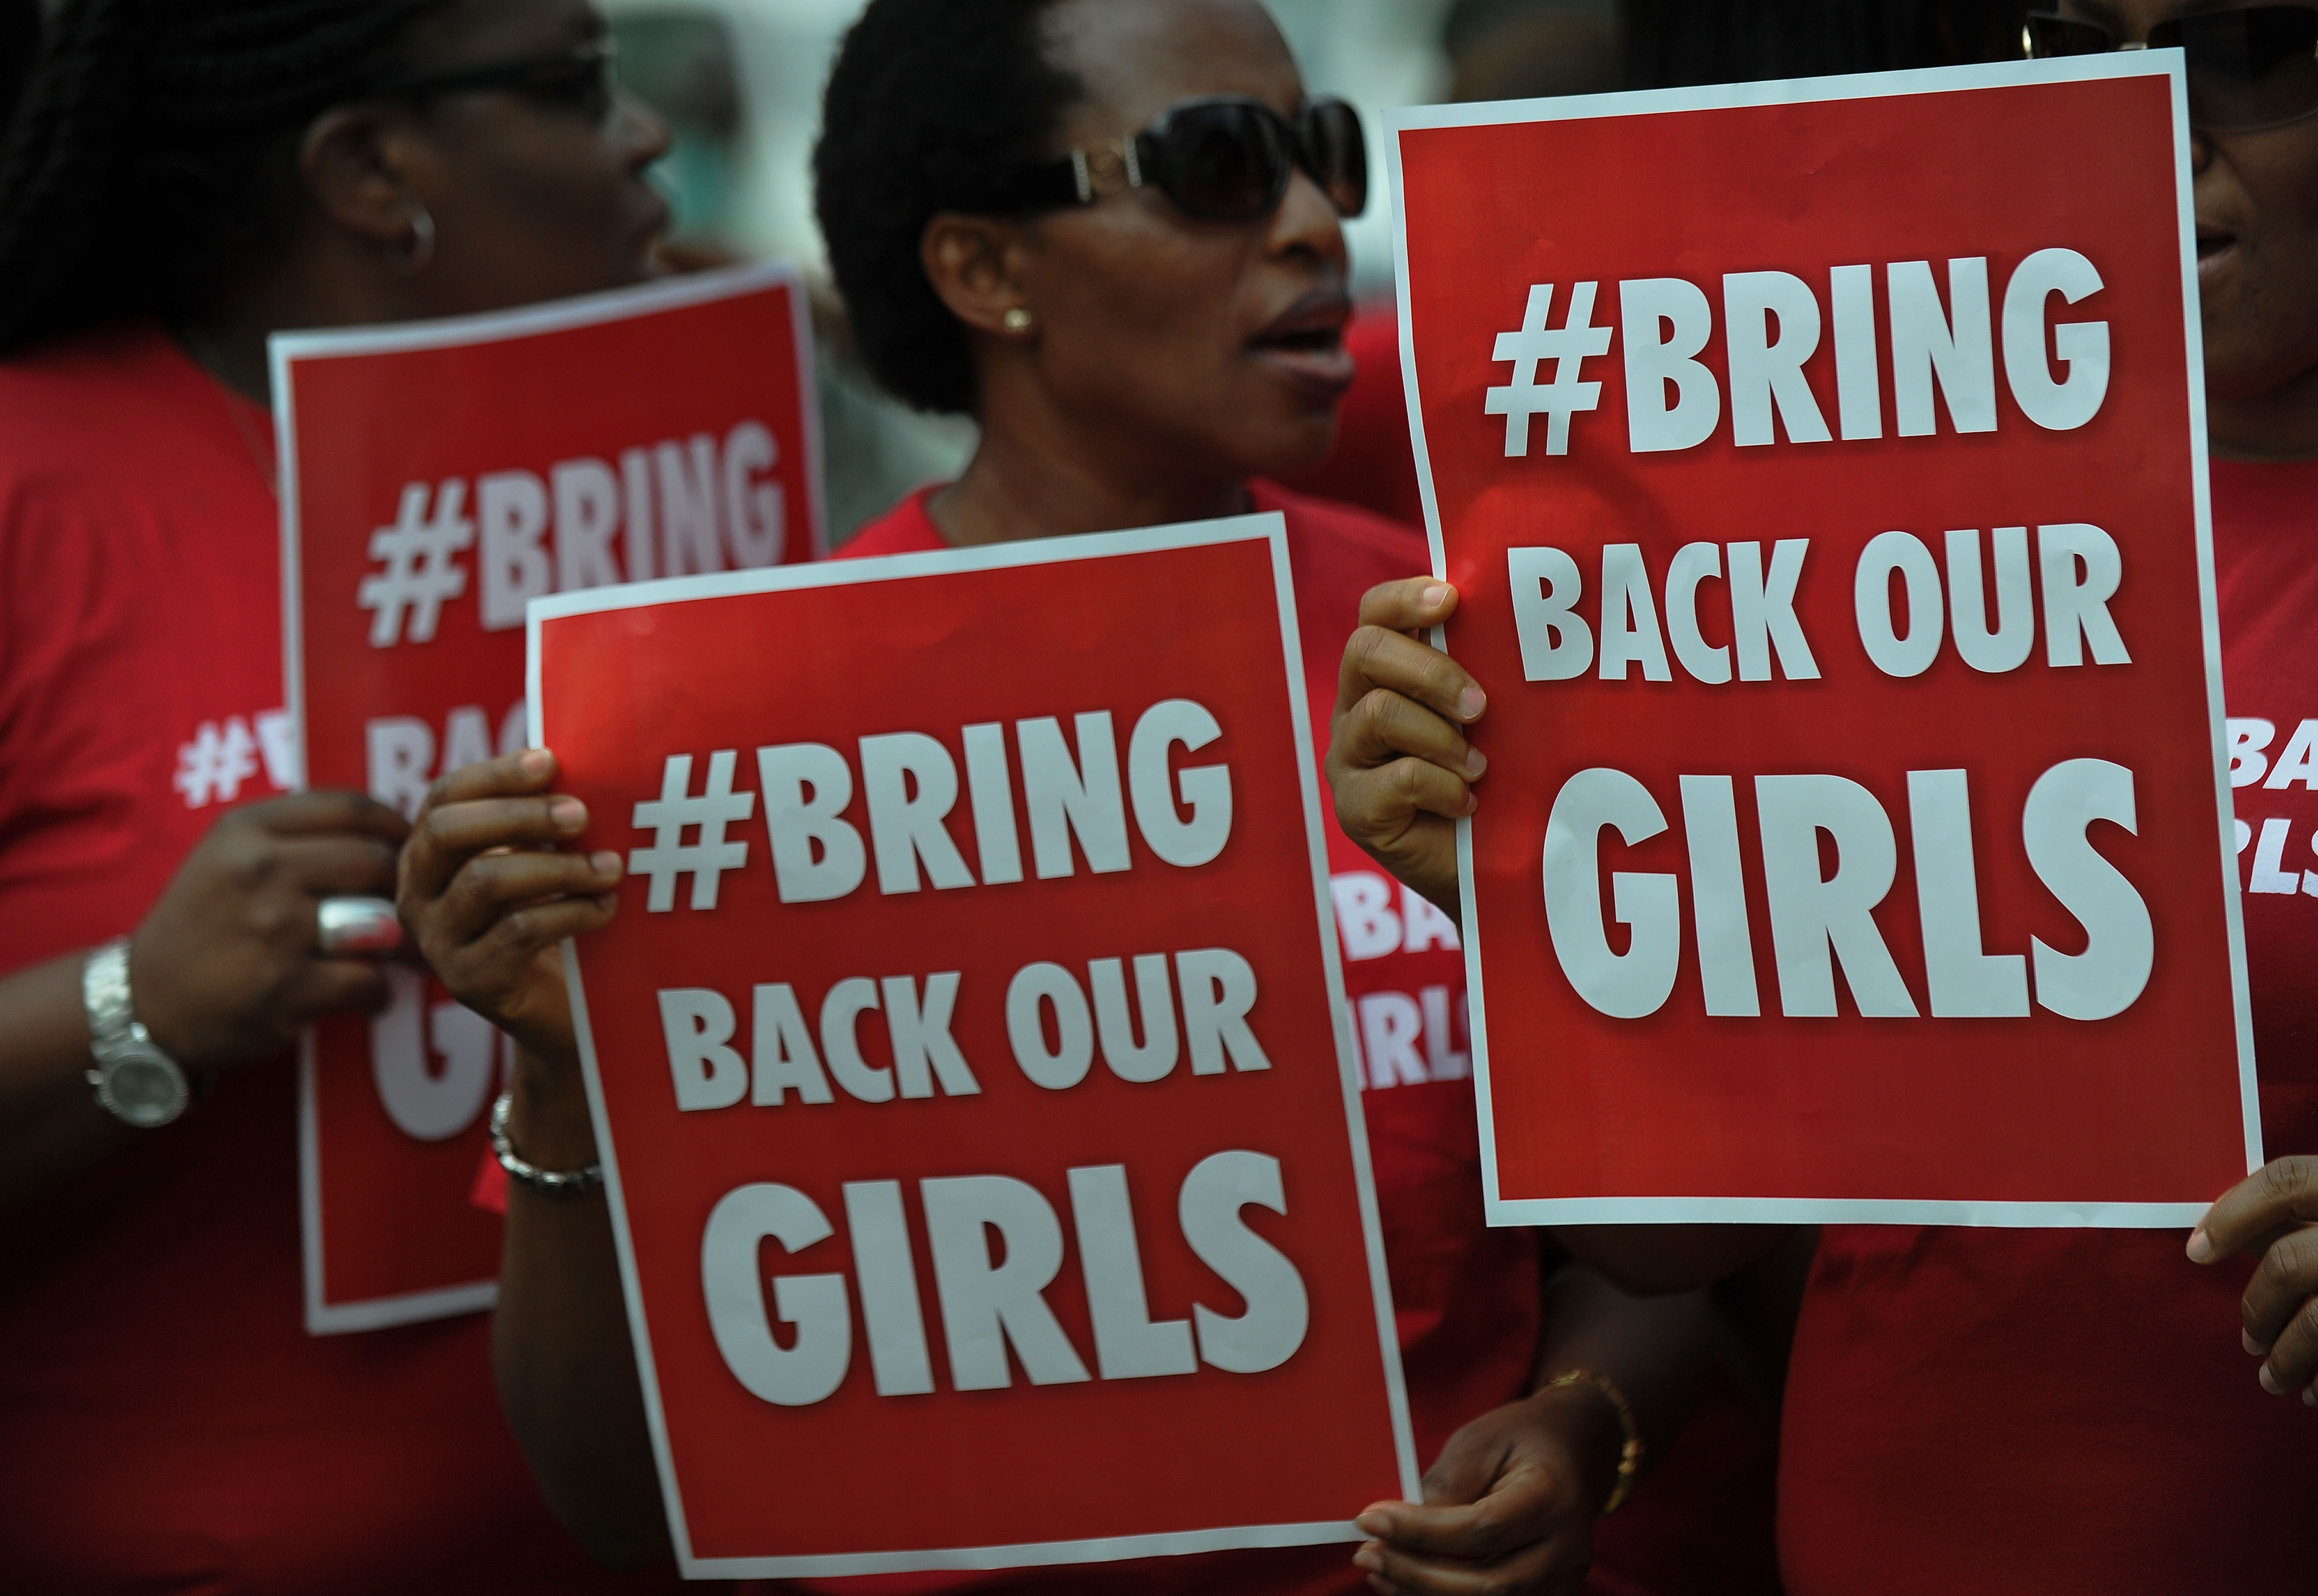 Nigerian women living in Kenya demonstrate to press for the release of Nigerian school girls kidnapped in nothern Nigeria by members of the Boko Haram, on May 16, 2014 in Nairobi.  (AFP PHOTO/Tony KARUMBA)